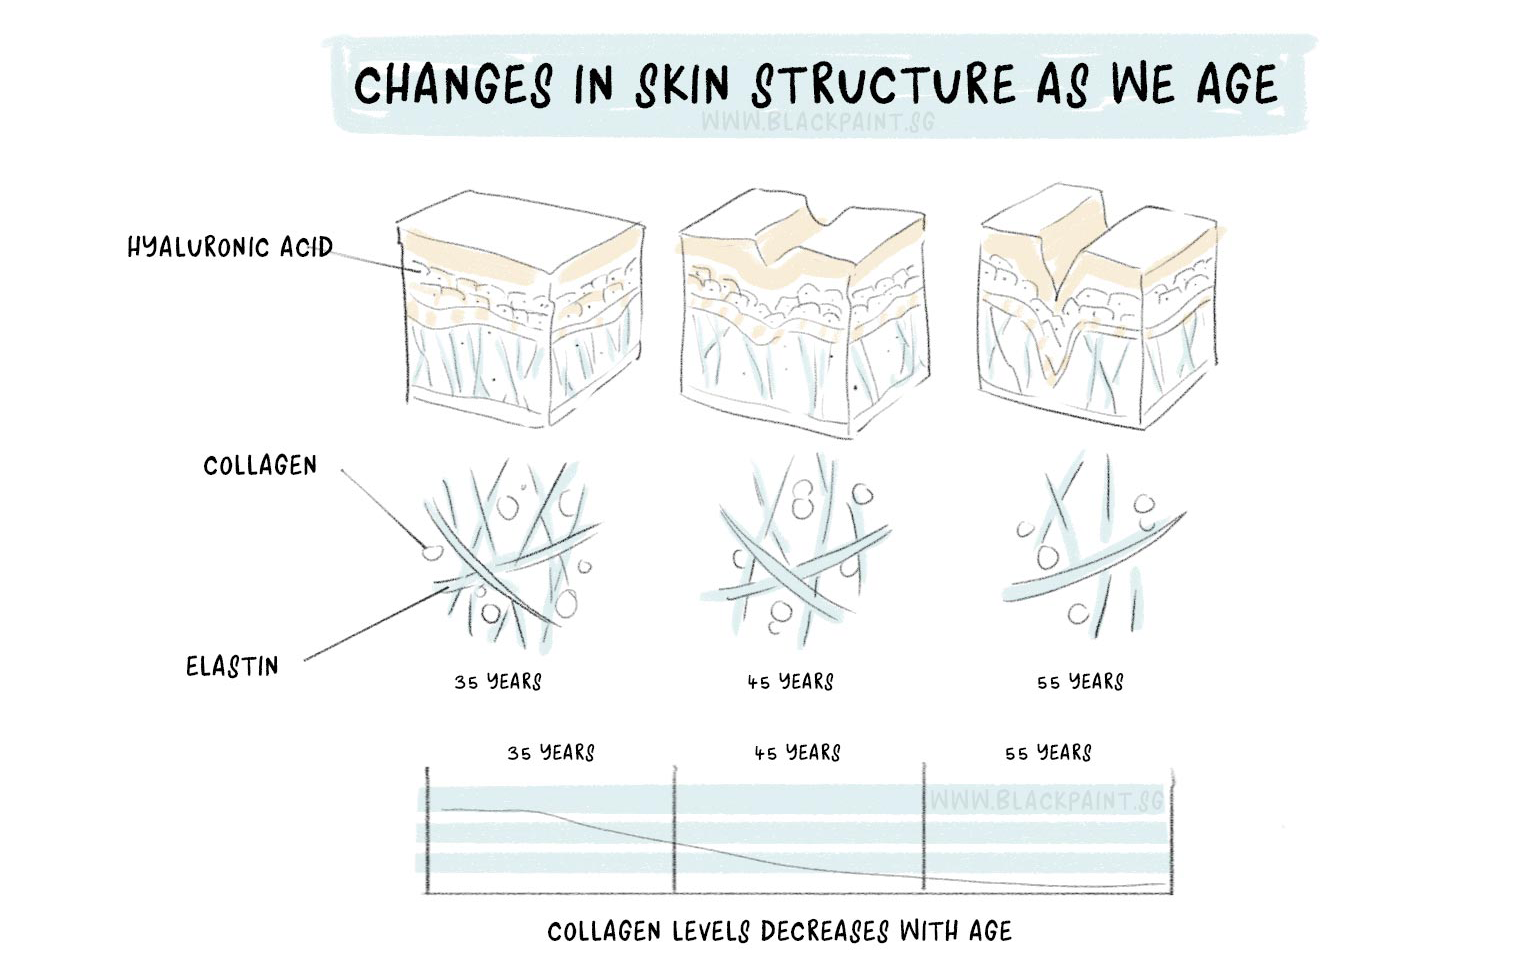 illustration of our skin changes as we age, where elasticity is reduced due to decrease in collagen content.